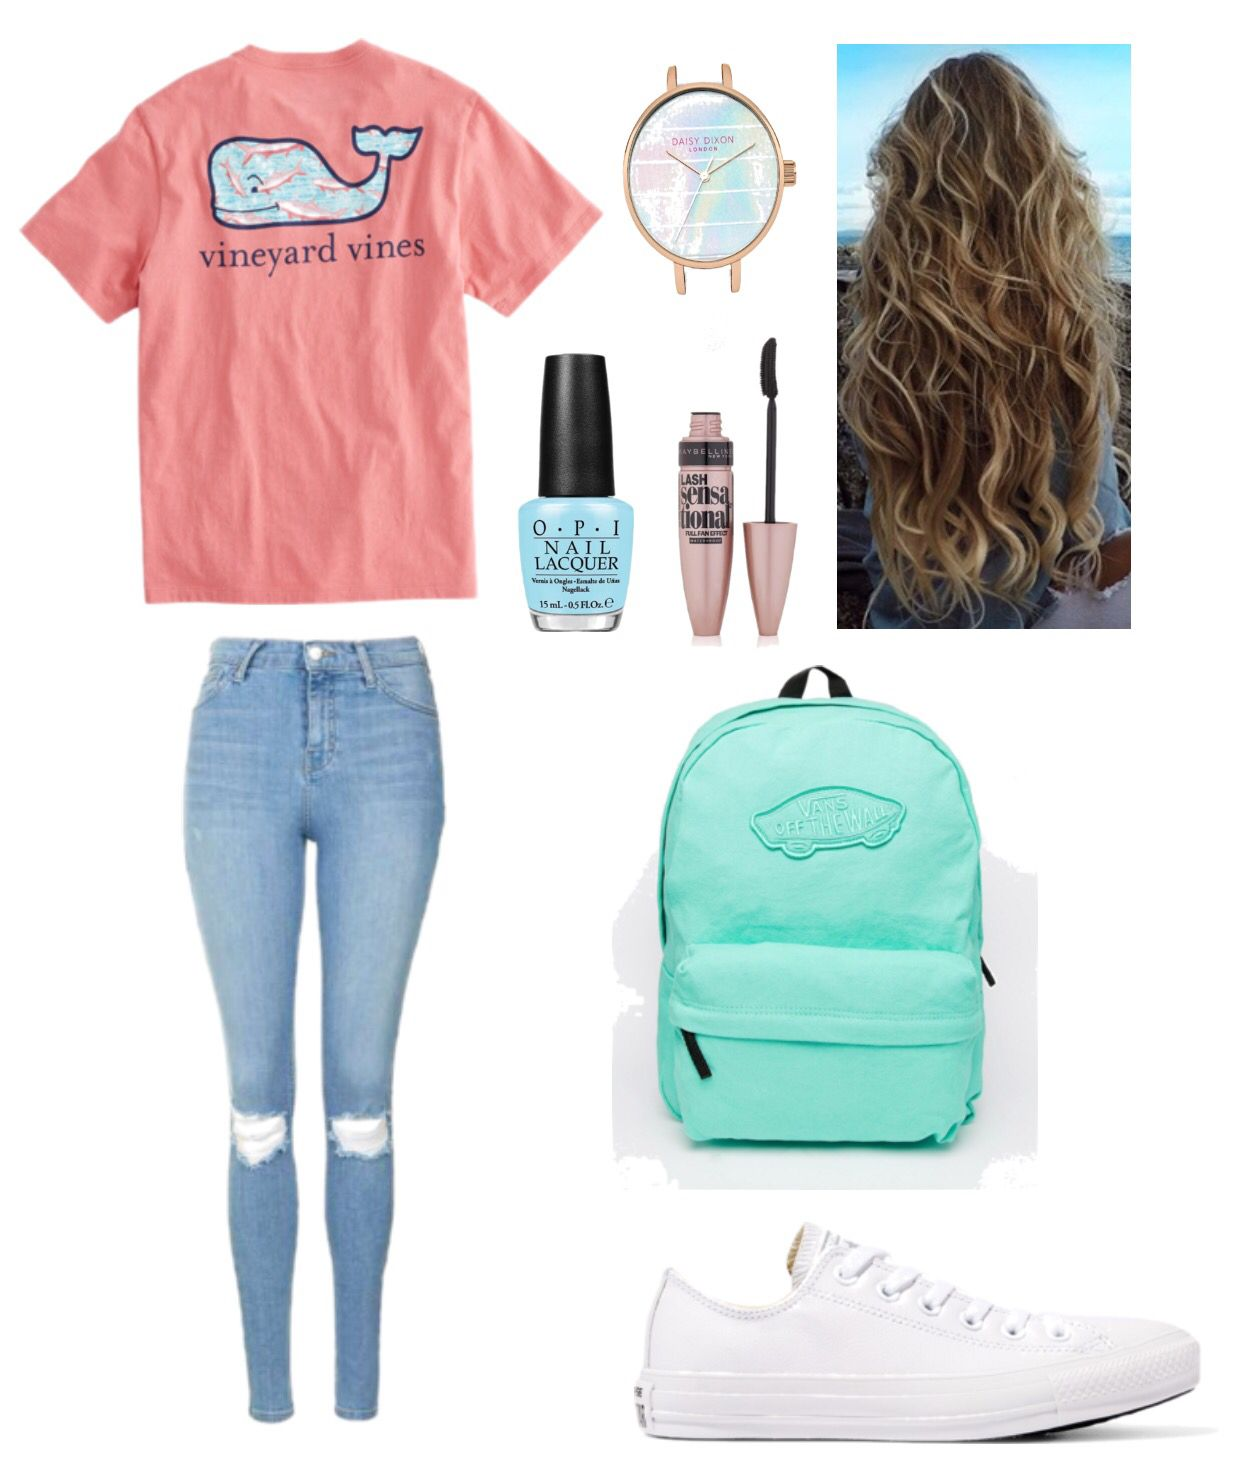 e9c6b9982 Perfect for first day of school outfit